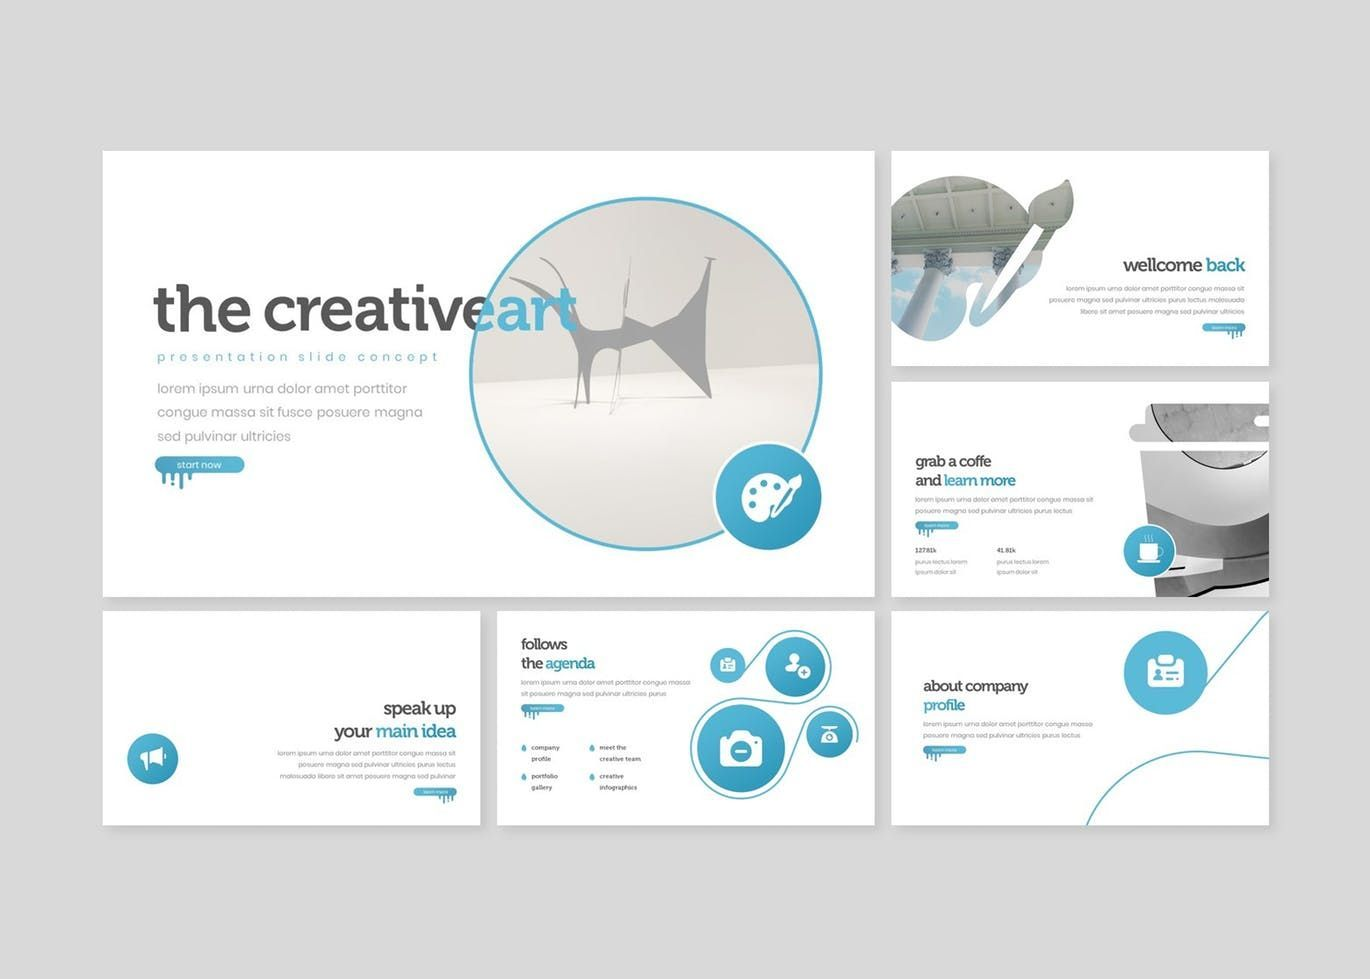 The Creativeart - Google Slides Template, Slide 2, 08243, Presentation Templates — PoweredTemplate.com